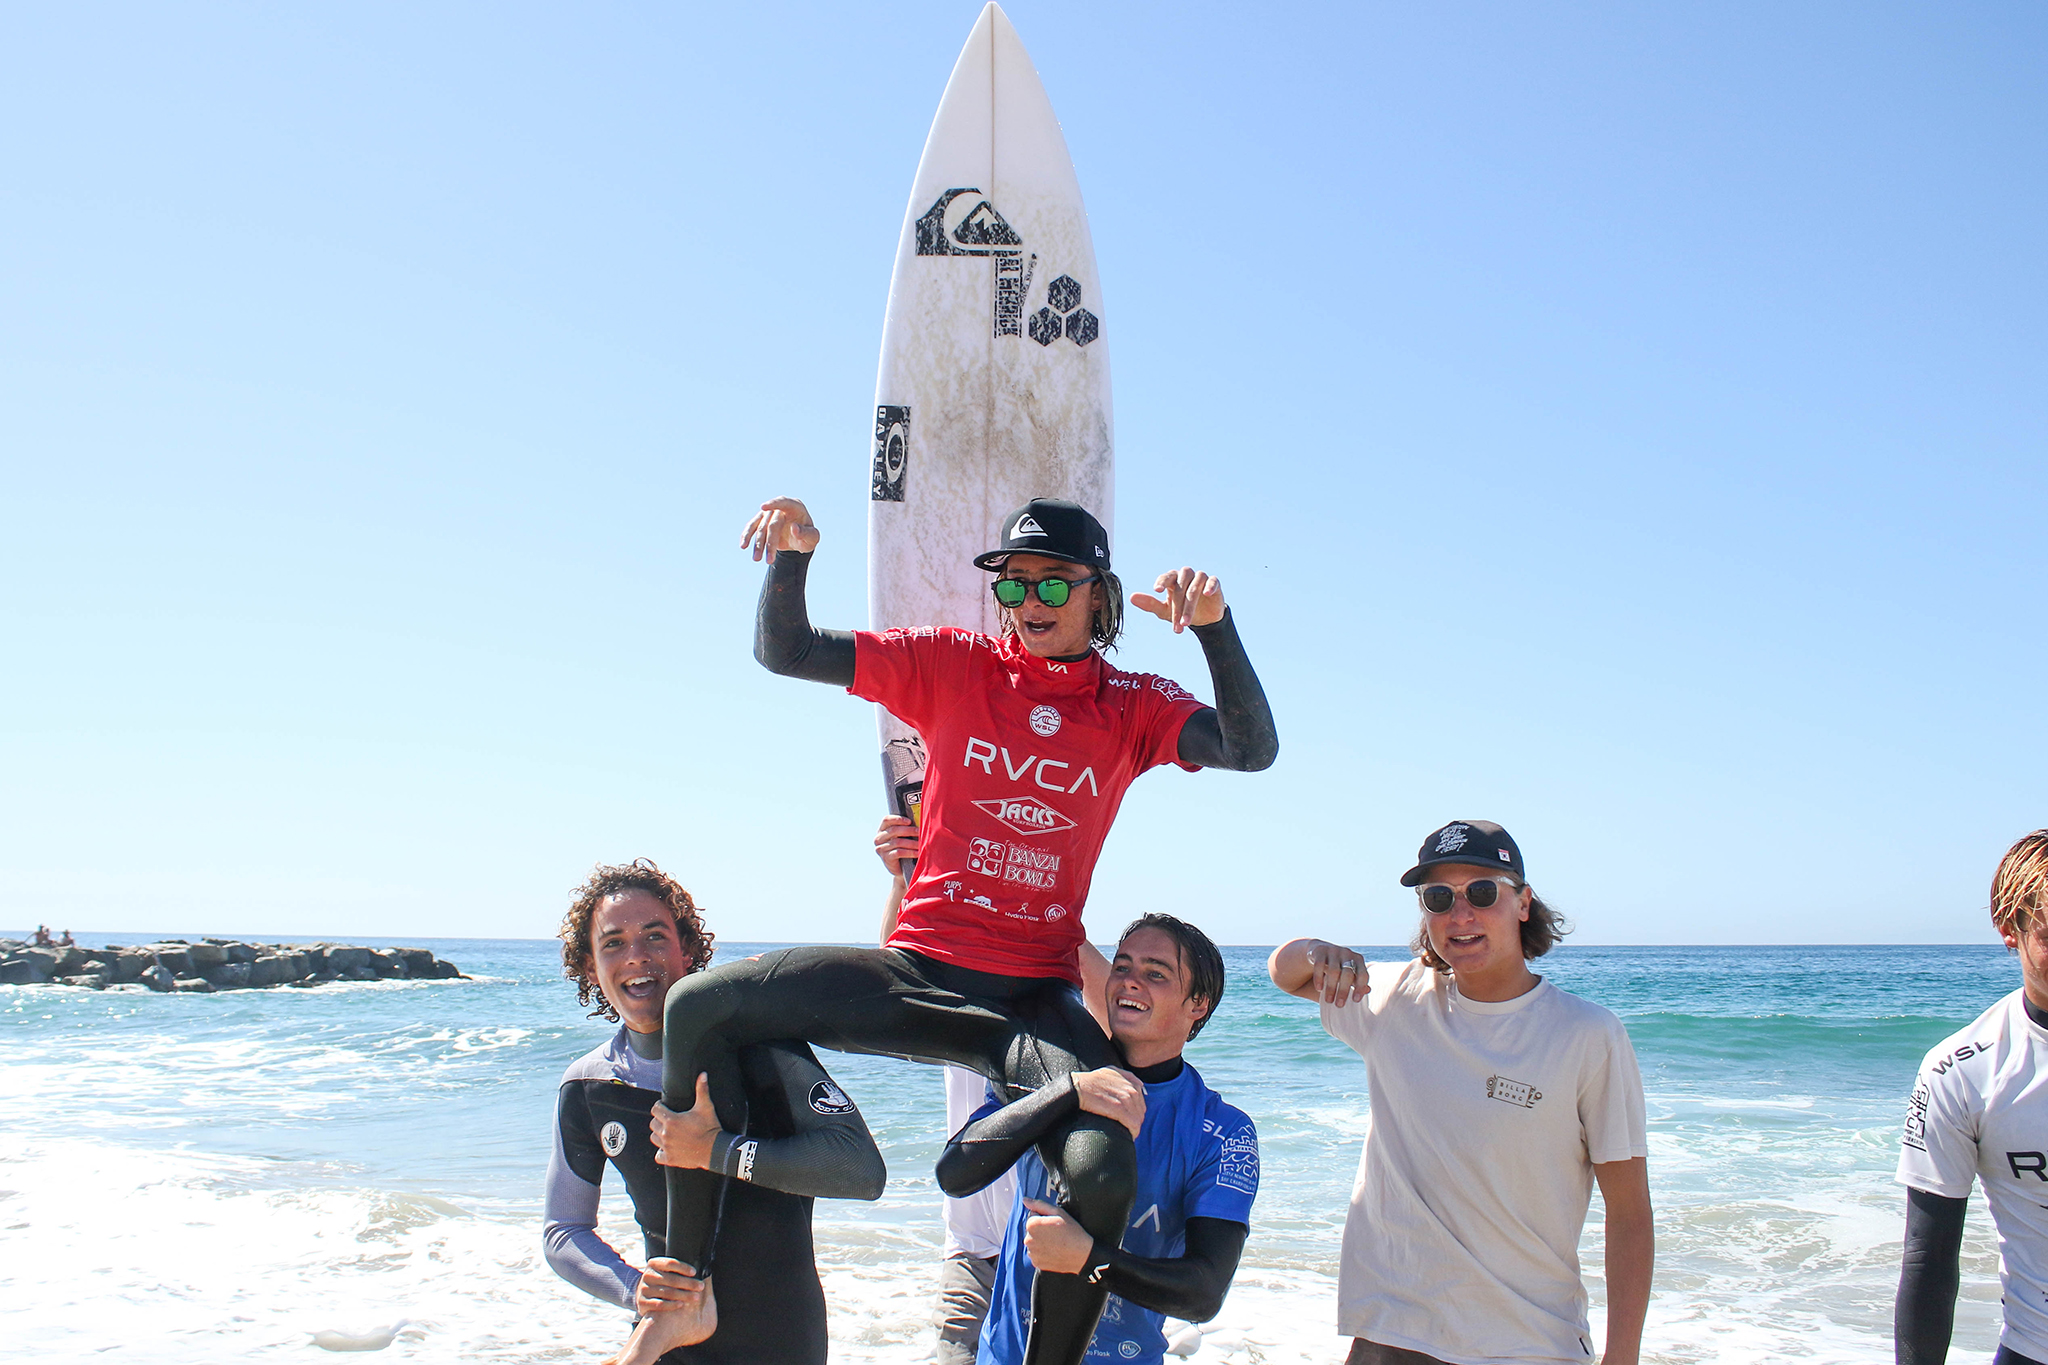 Luke Gordon and Tommy Coleman Finish 2nd-3rd at RVCA Pro